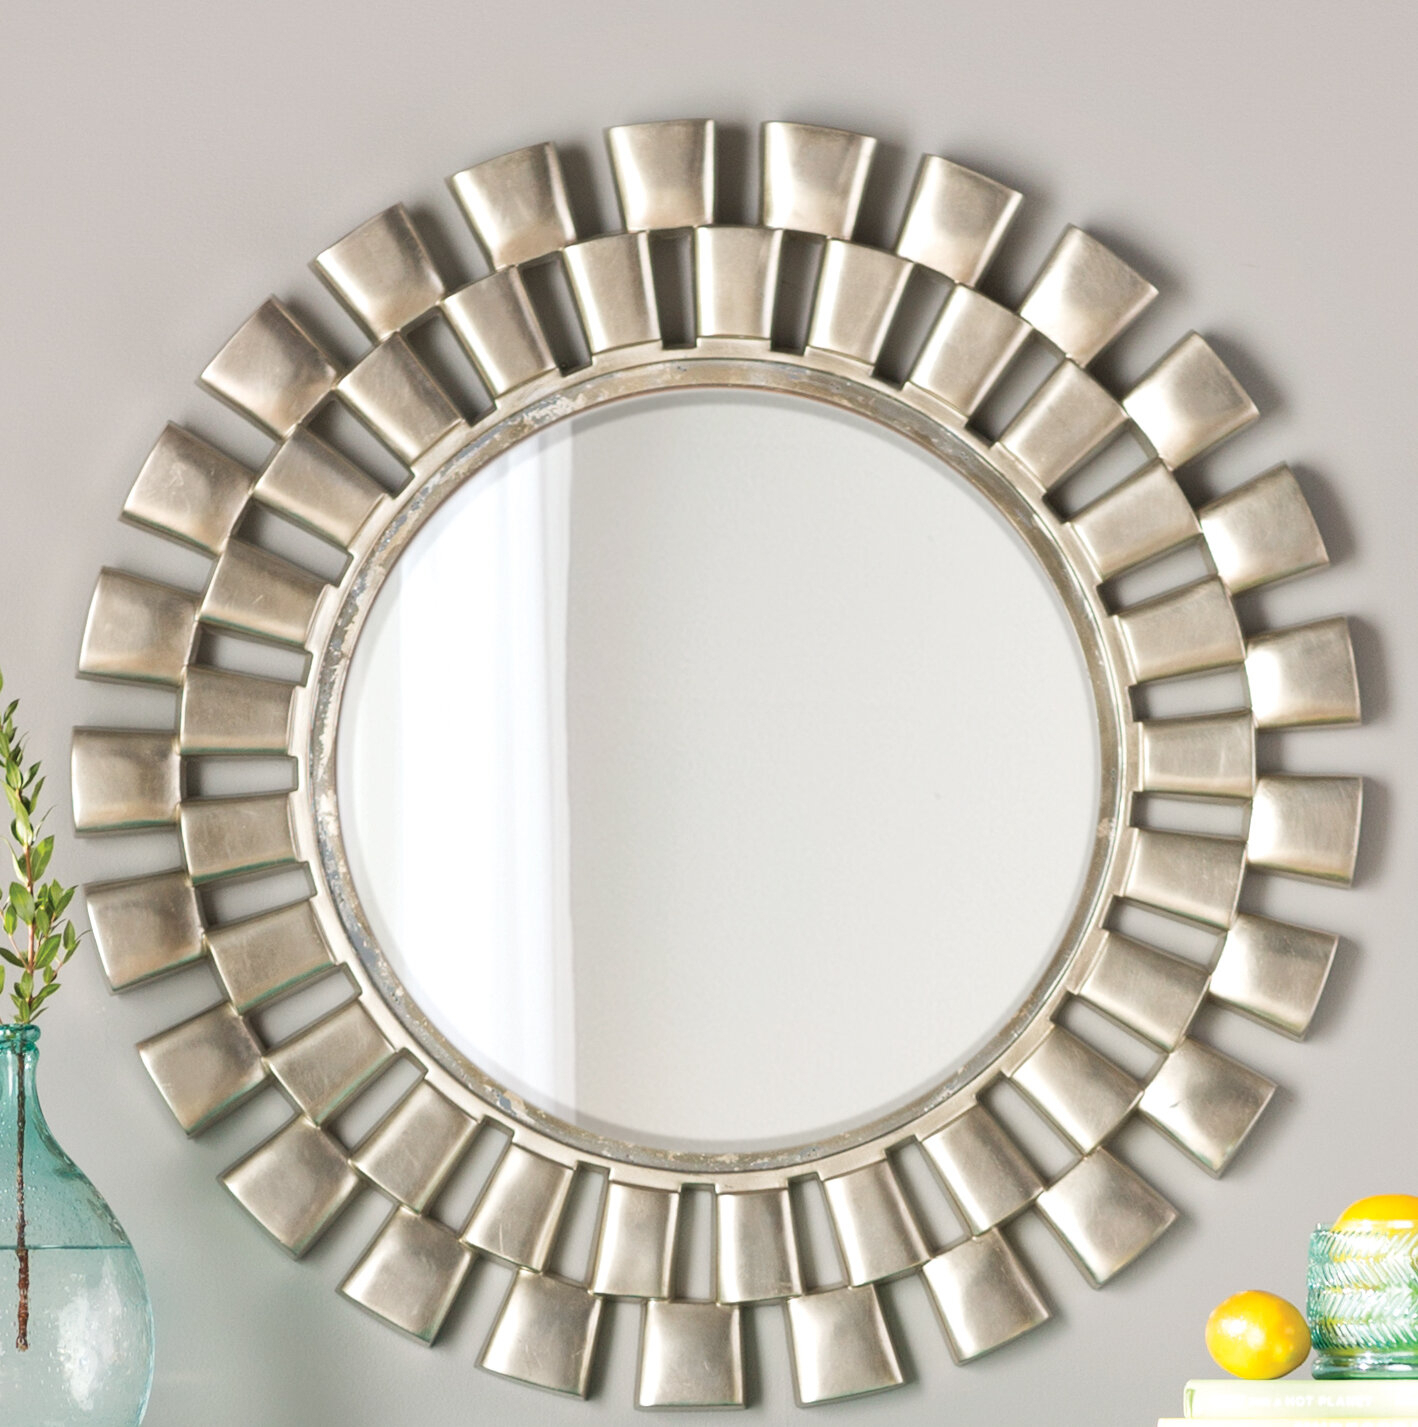 Glam Beveled Accent Mirror Regarding Josephson Starburst Glam Beveled Accent Wall Mirrors (Image 5 of 20)